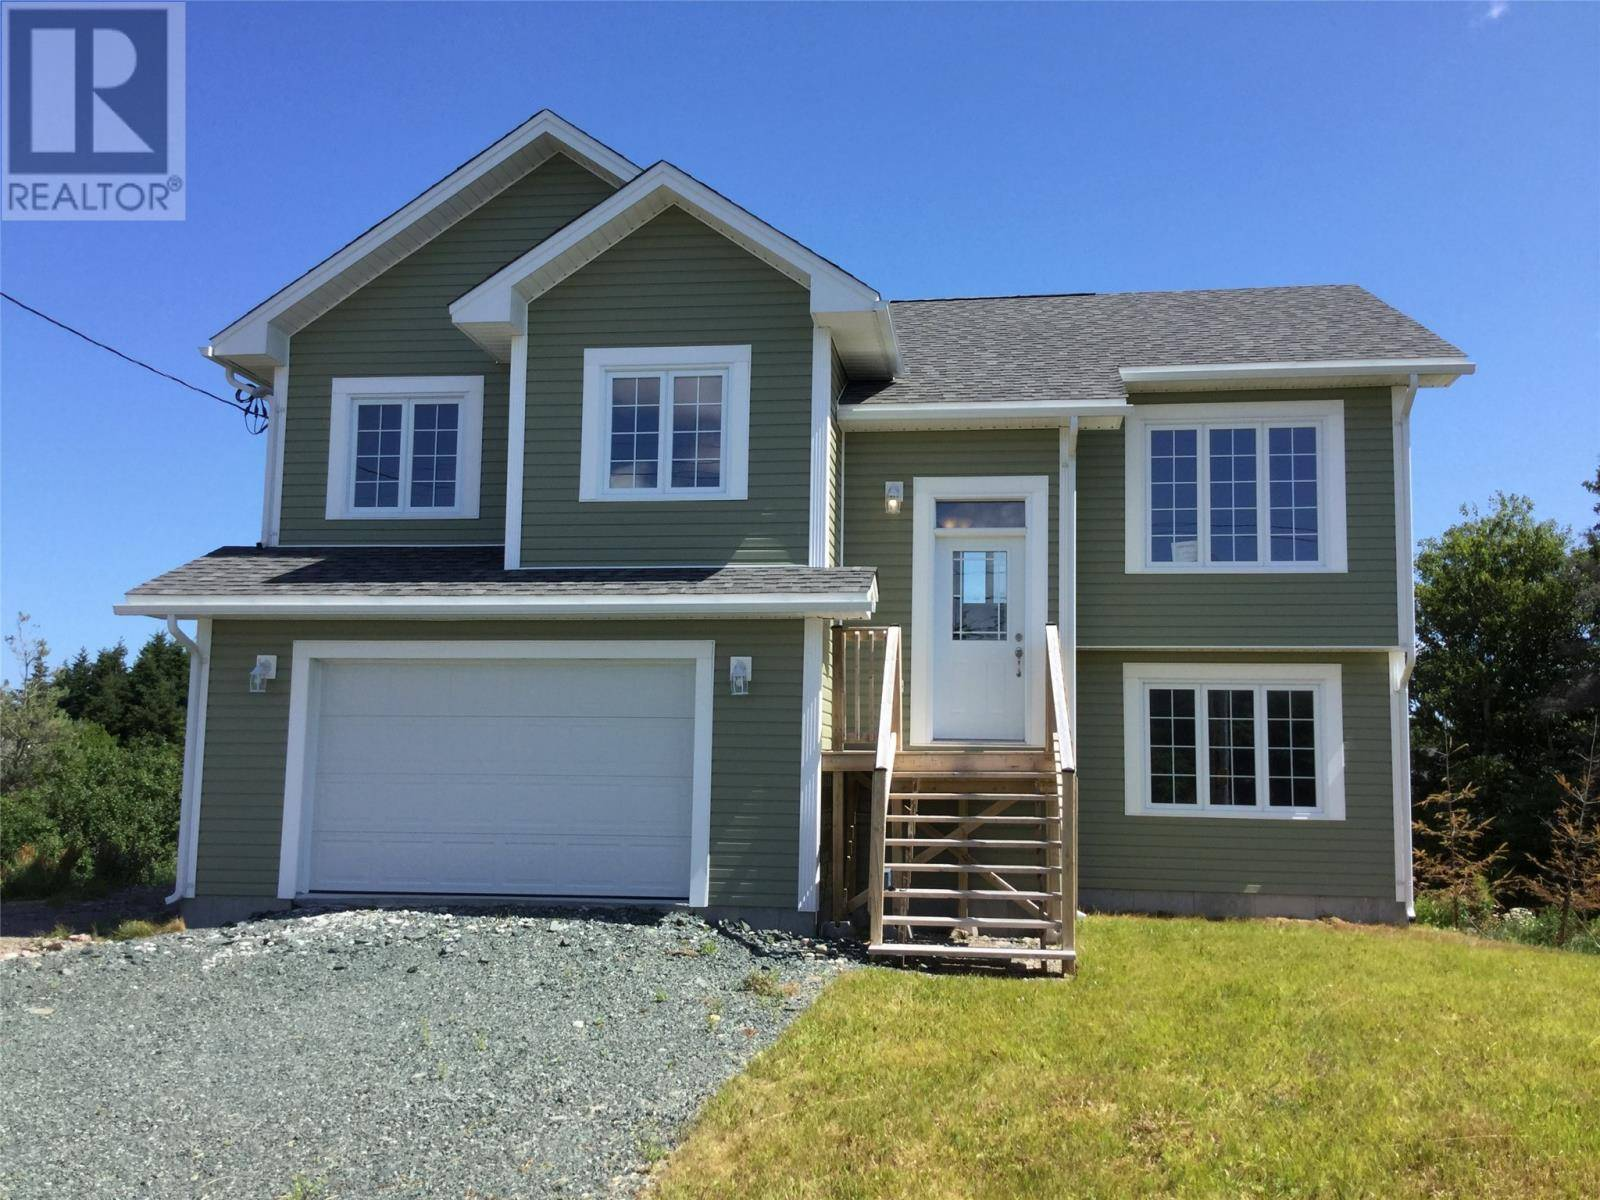 House for sale at 42 Dowdens Rd Conception Bay South Newfoundland - MLS: 1200794